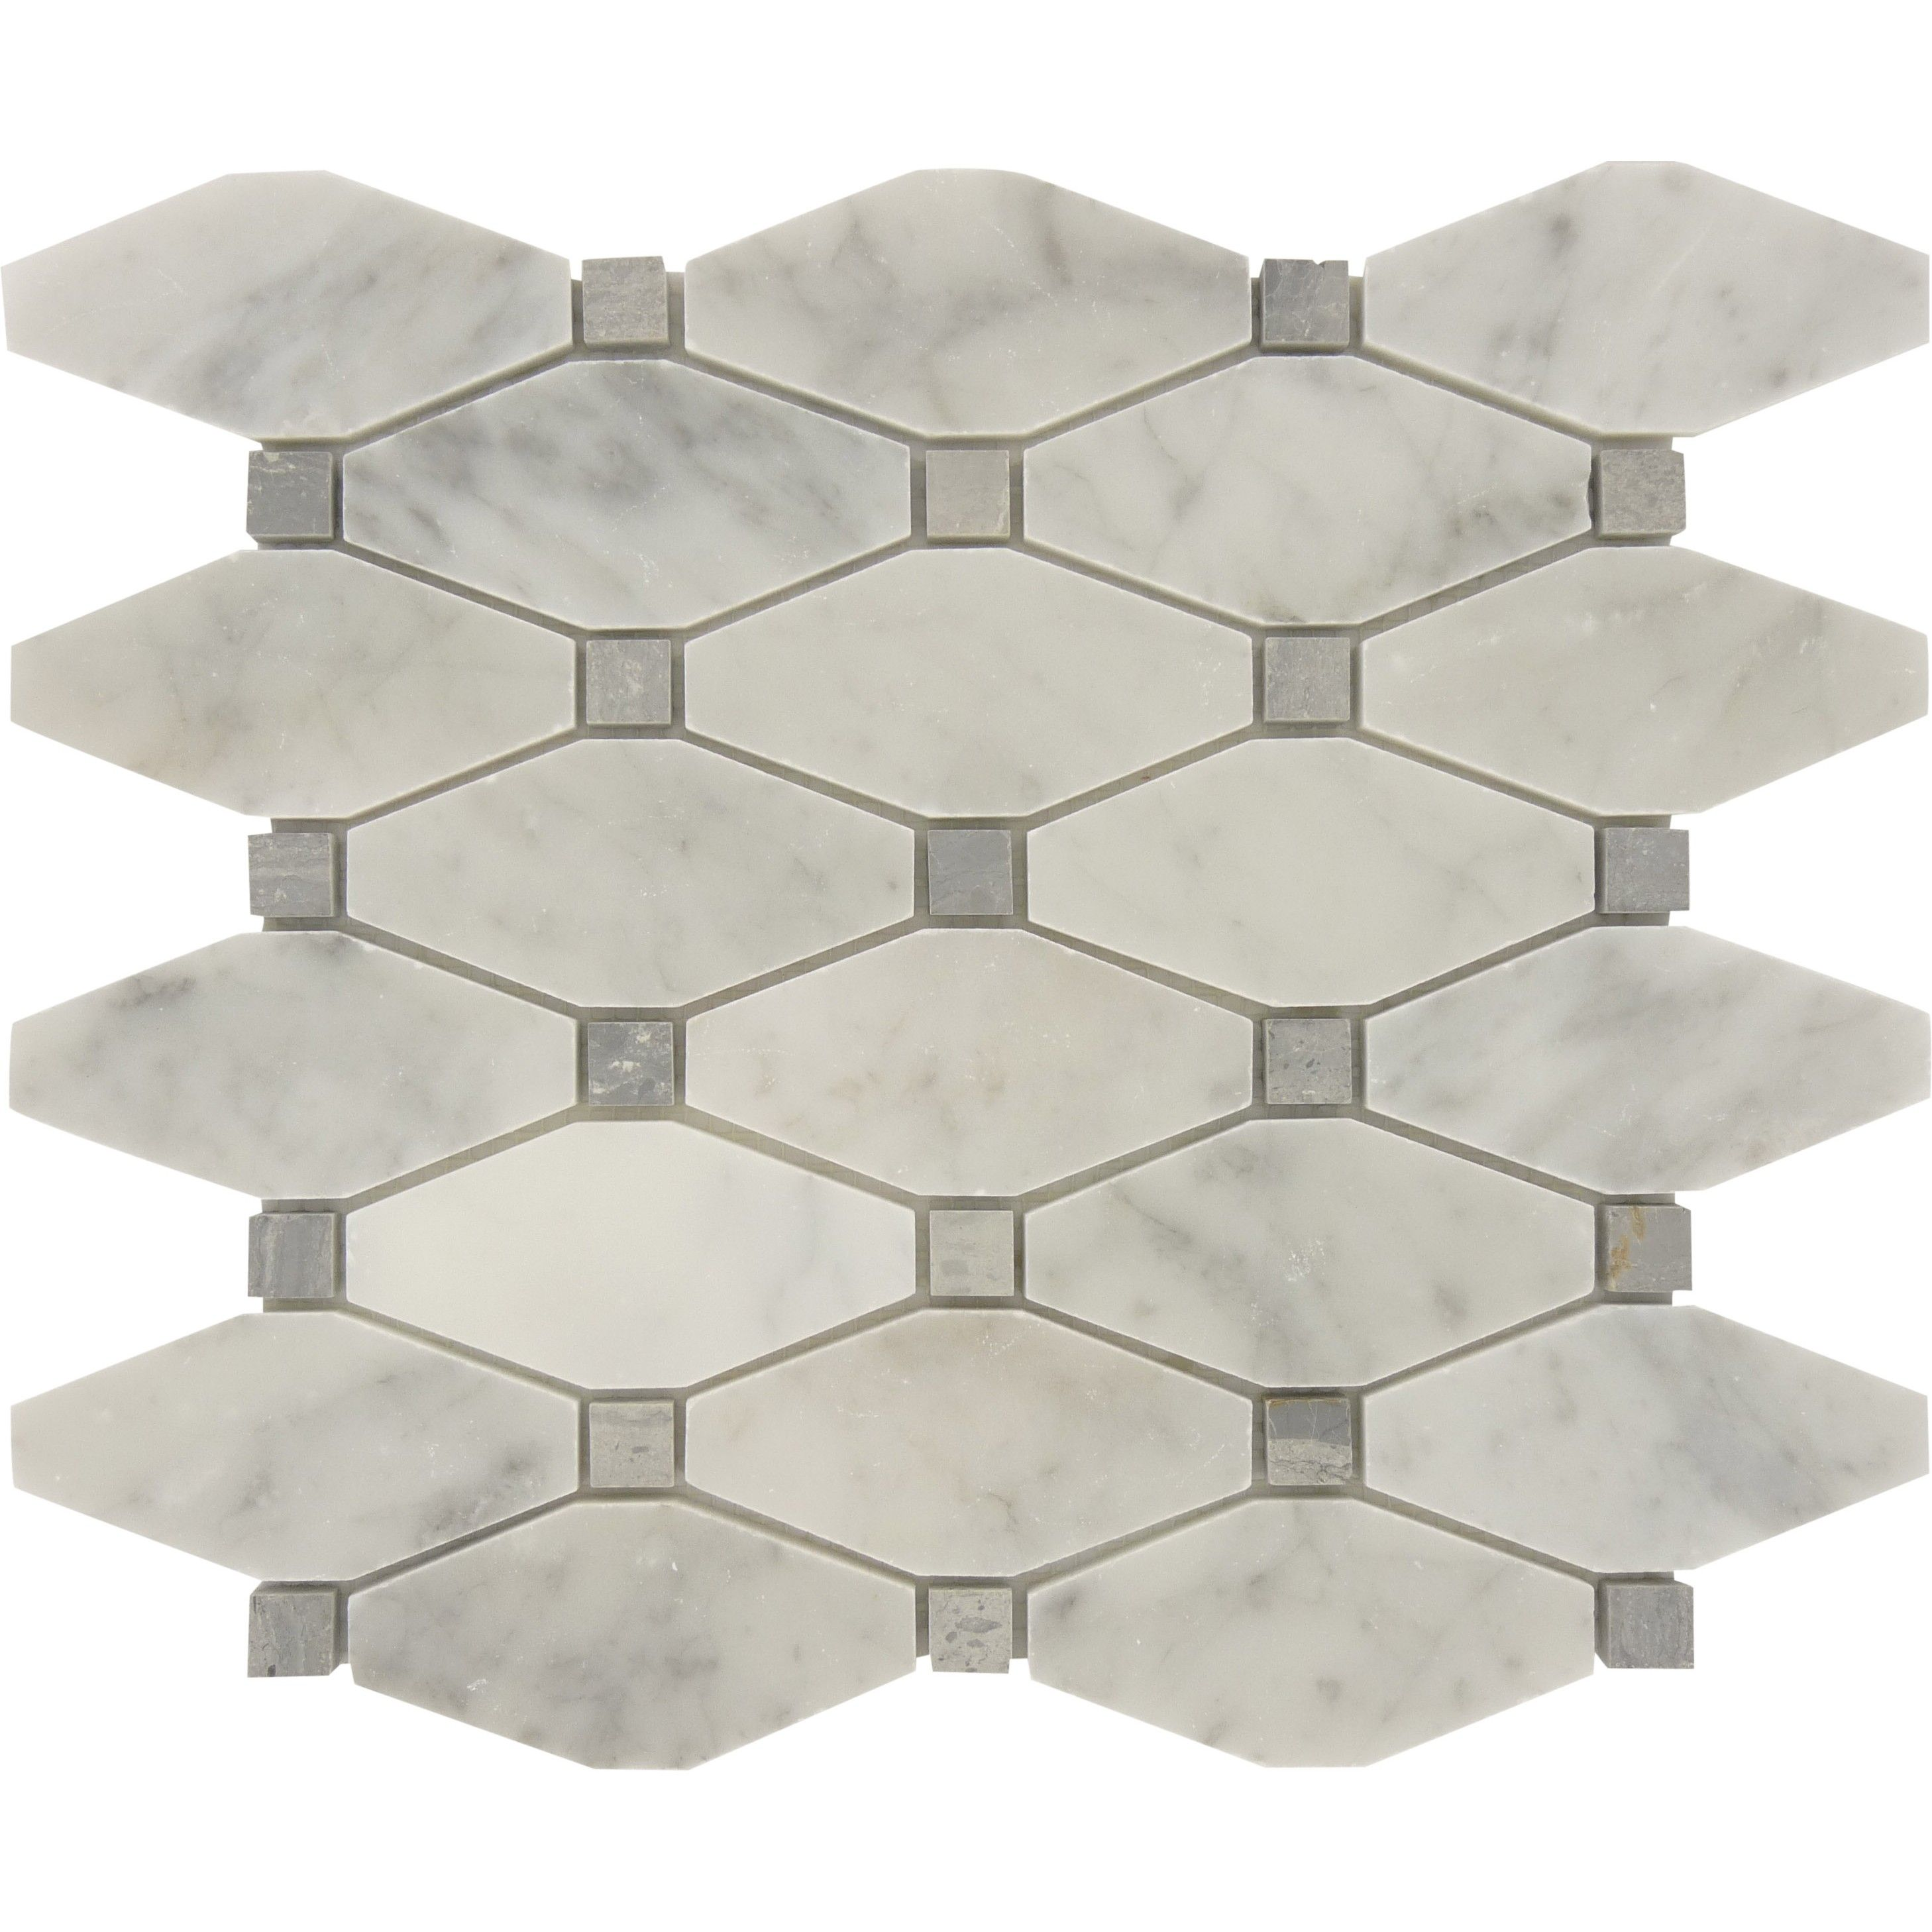 Sheet Size 10 1 X2f 2 Quot X 12 Quot Tile Size Variable Tile Thickness 1 X2f 4 Quot Nominal G Polished Marble Tiles Marble Tile Metal Tile